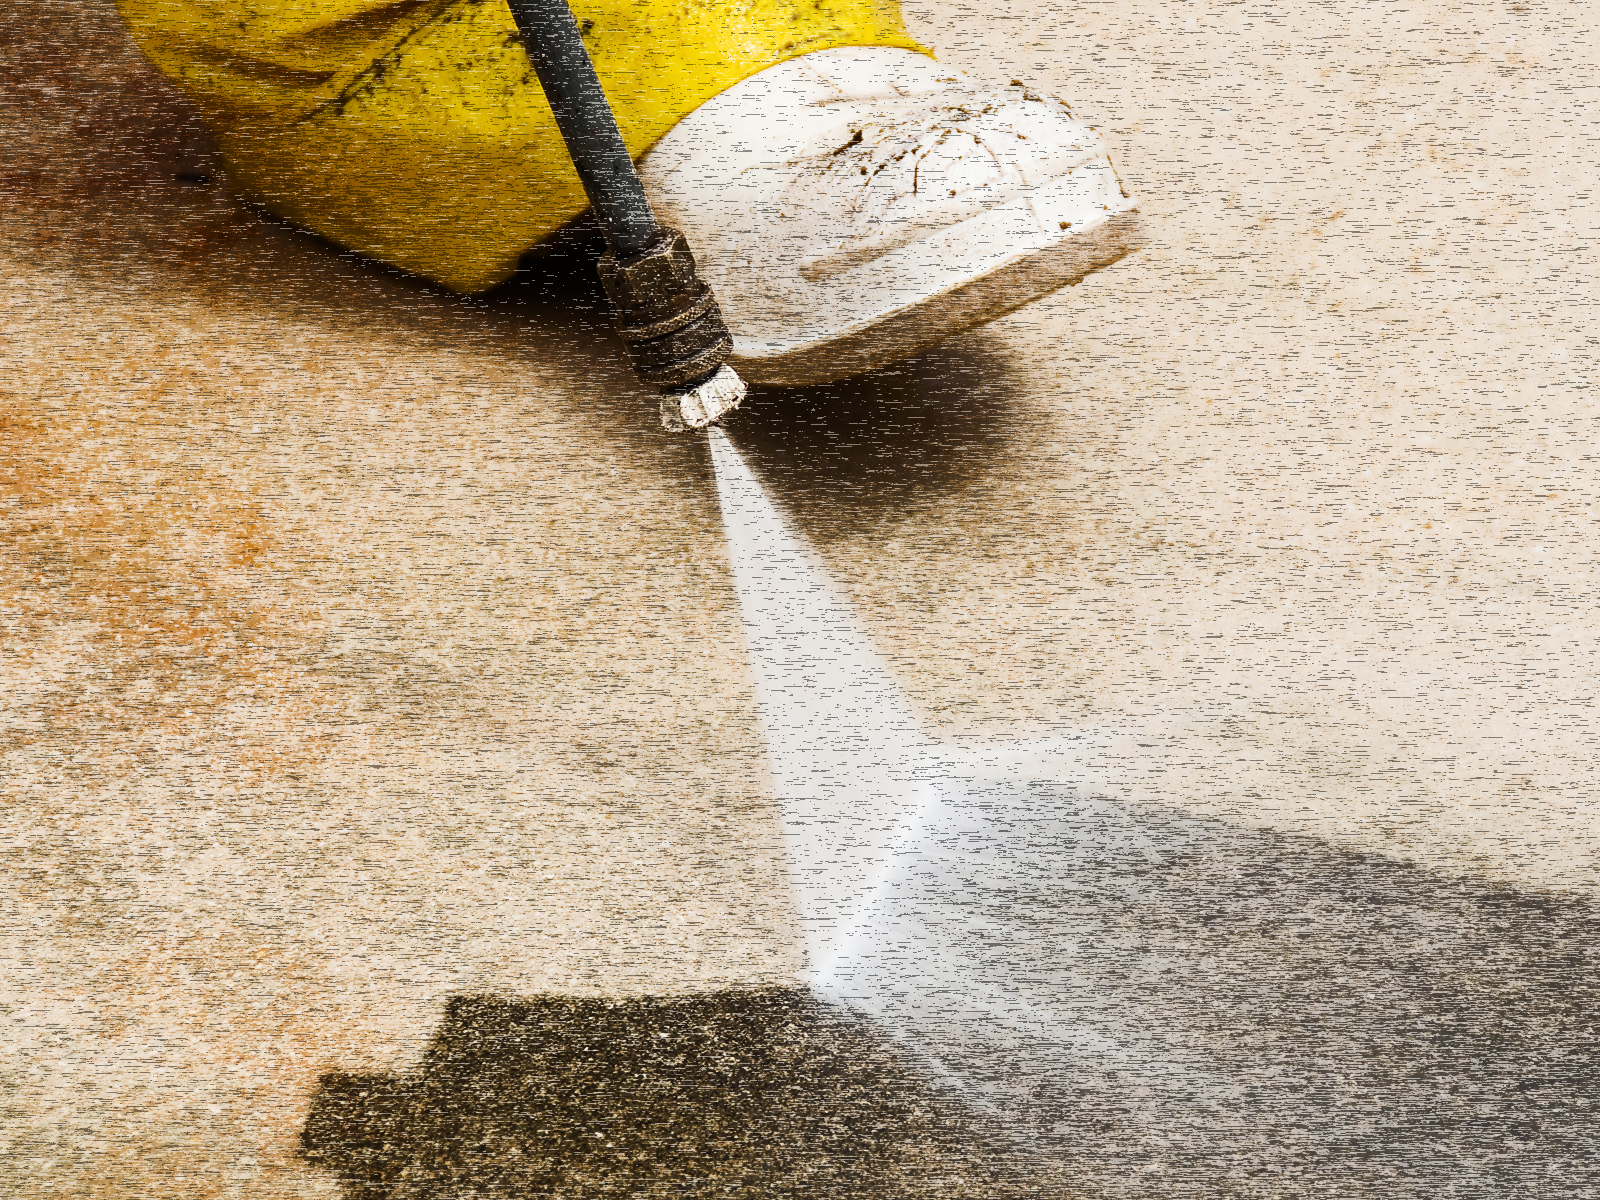 PRESSURE WASHING SERVICES IN BOCA POINTE FLORIDA